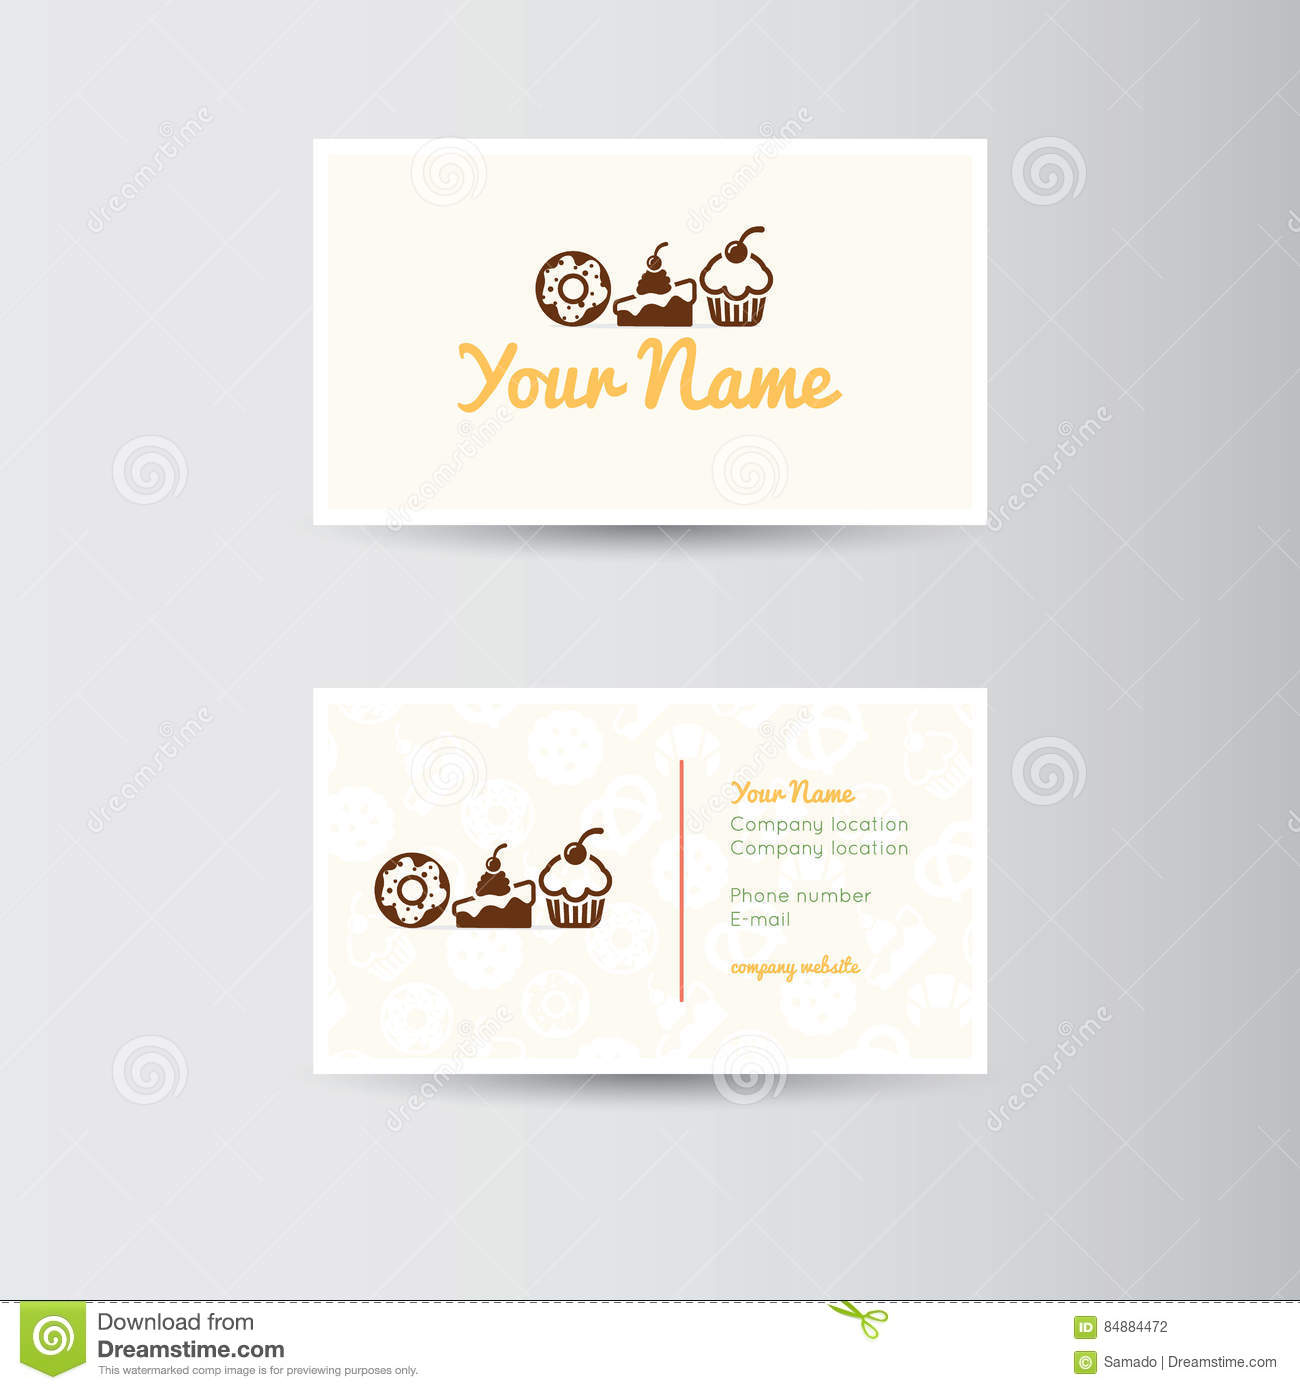 Business card template stock vector illustration of communication download business card template stock vector illustration of communication 84884472 reheart Gallery